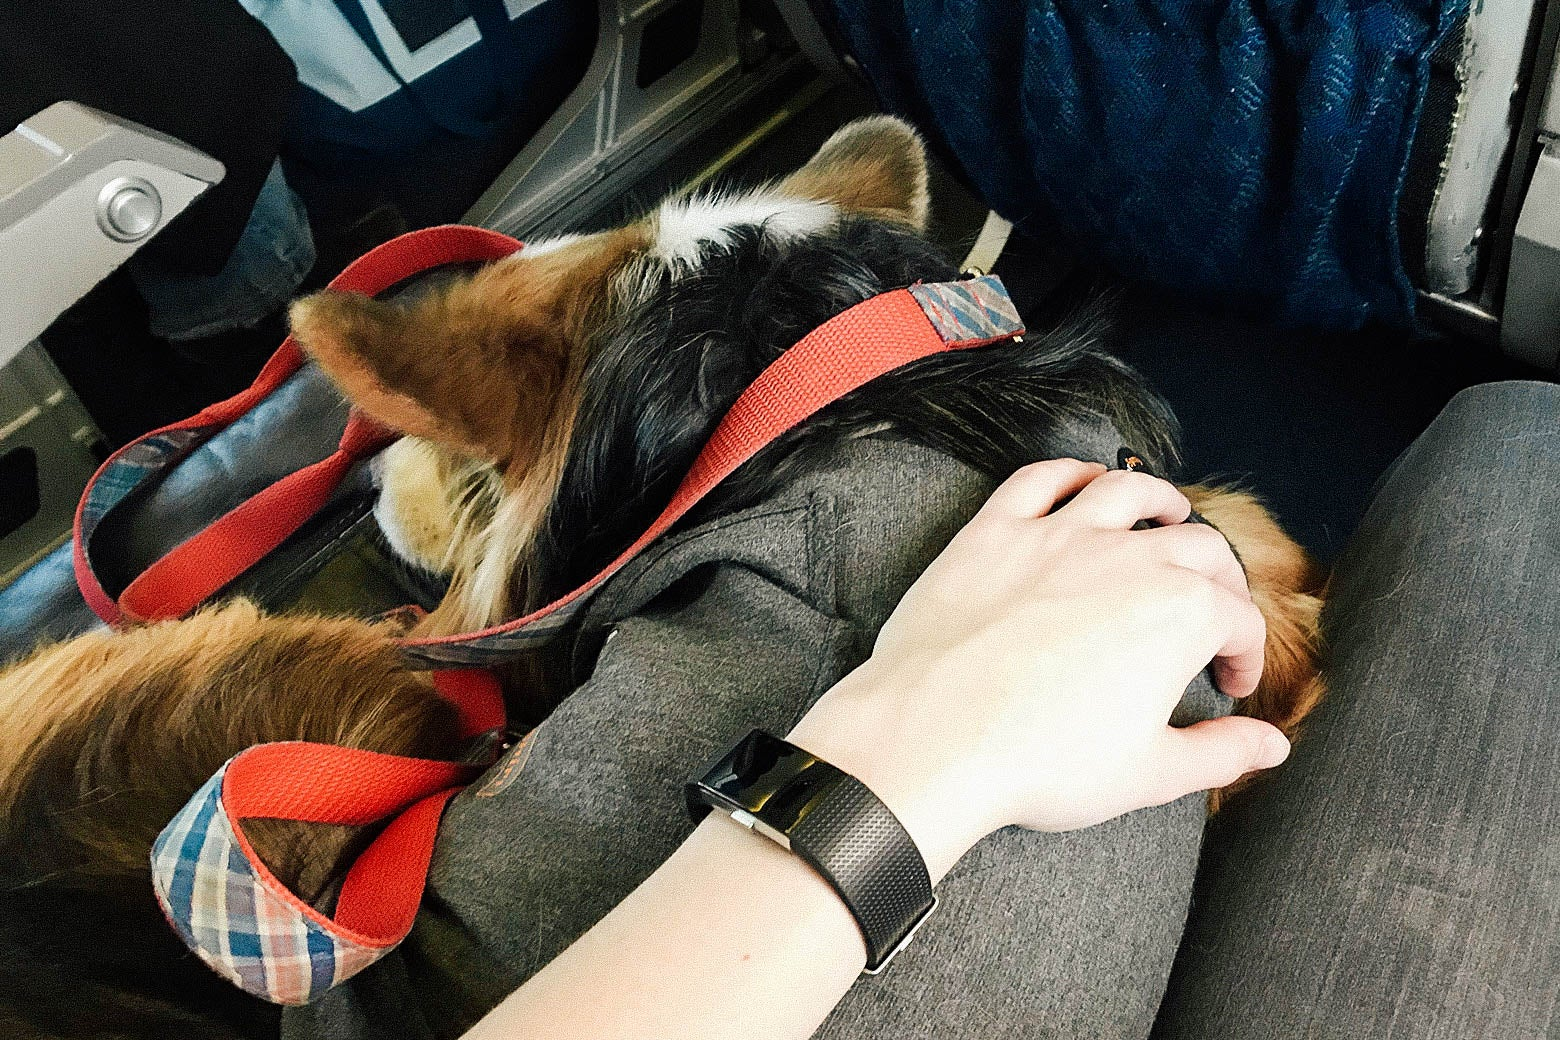 An emotional support corgi sleeps quietly next to a passenger on a plane.